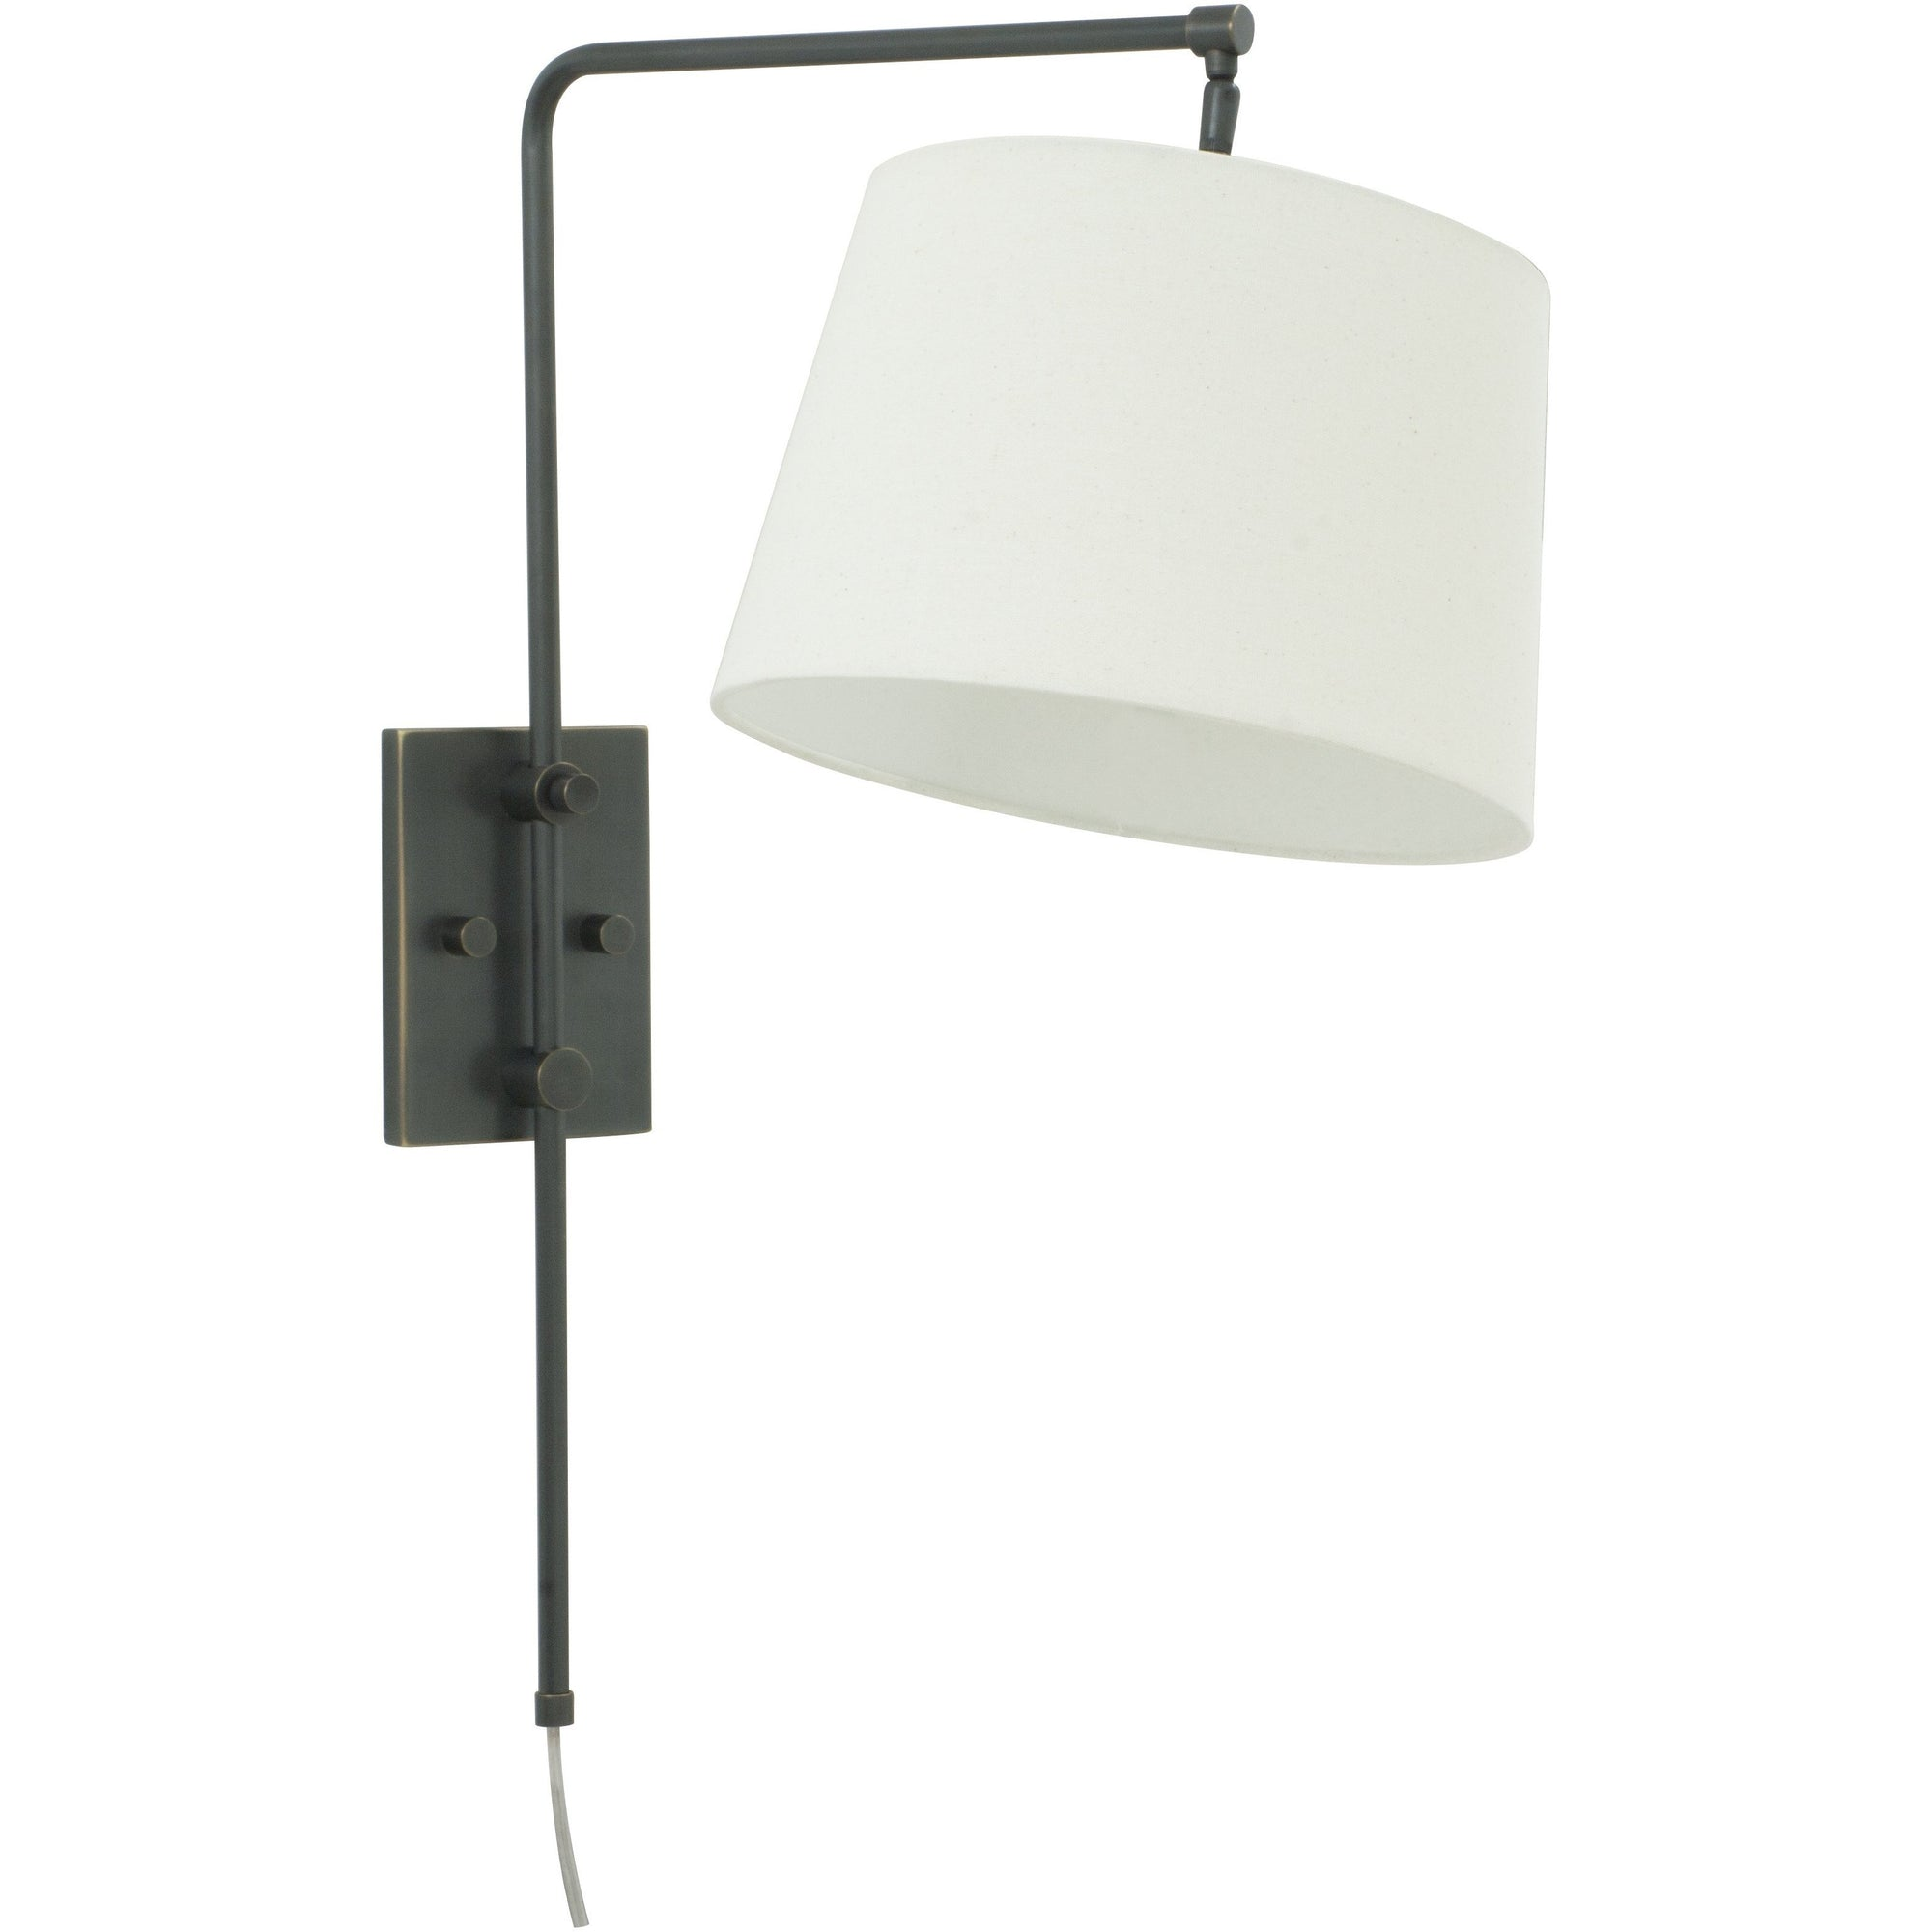 House Of Troy Wall Lamps Crown Point Adjustable Downbridge Wall Lamp by House Of Troy CR725-OB